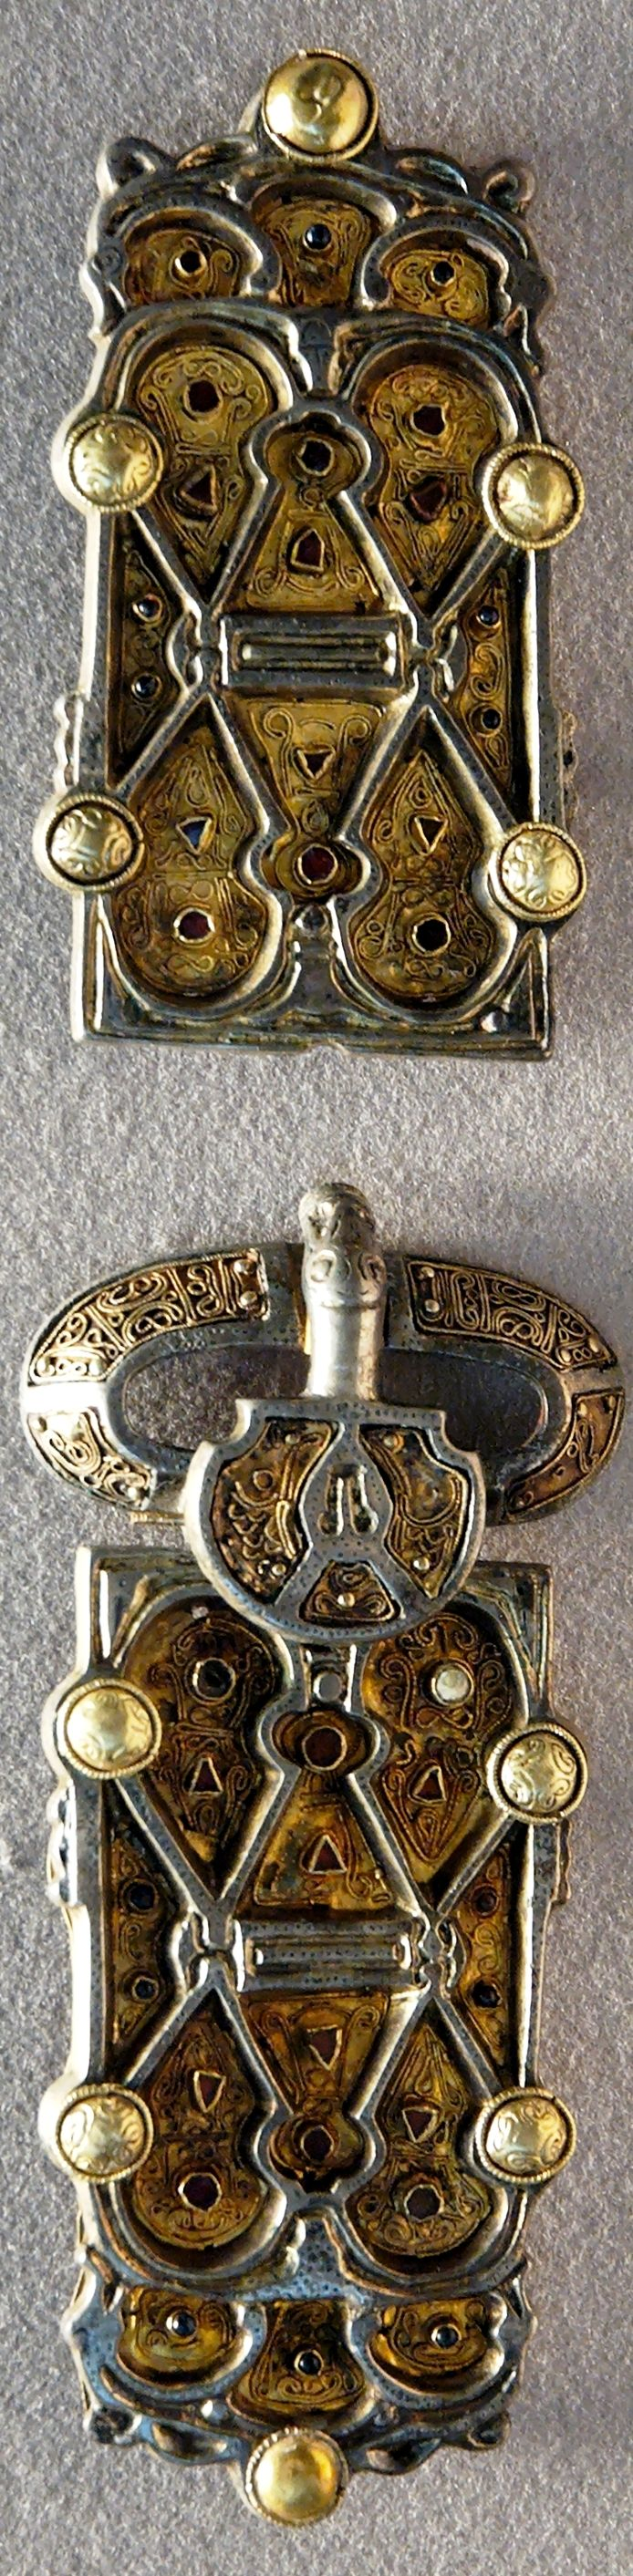 Belt plaques from the finery set of Queen Aregund (c.515–573AD), wife of Clotaire I (511–561AD), silver, glass paste & garnet, made c.570AD in Merovingian Gaul